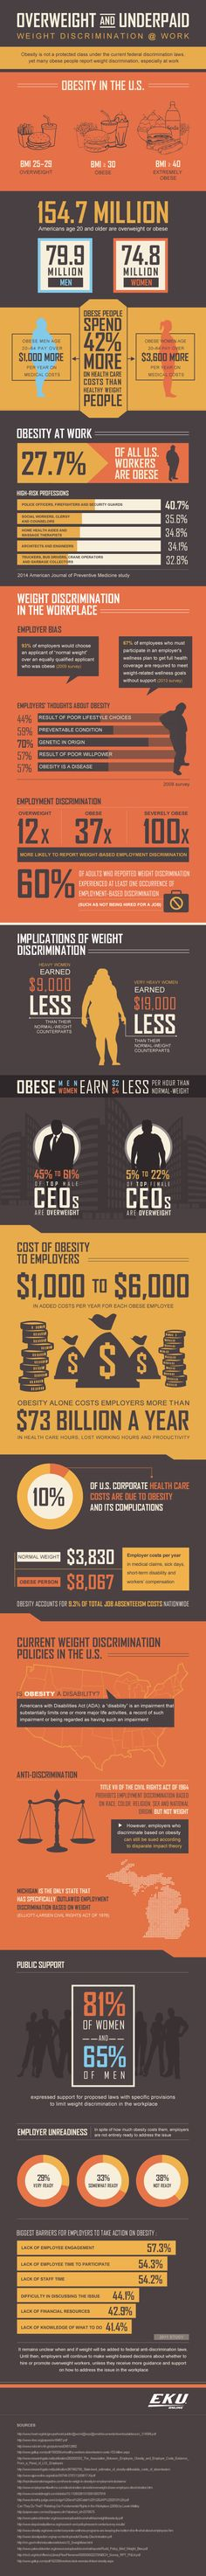 Overweight & Underpaid: Weight Discrimination at Work #Infographics